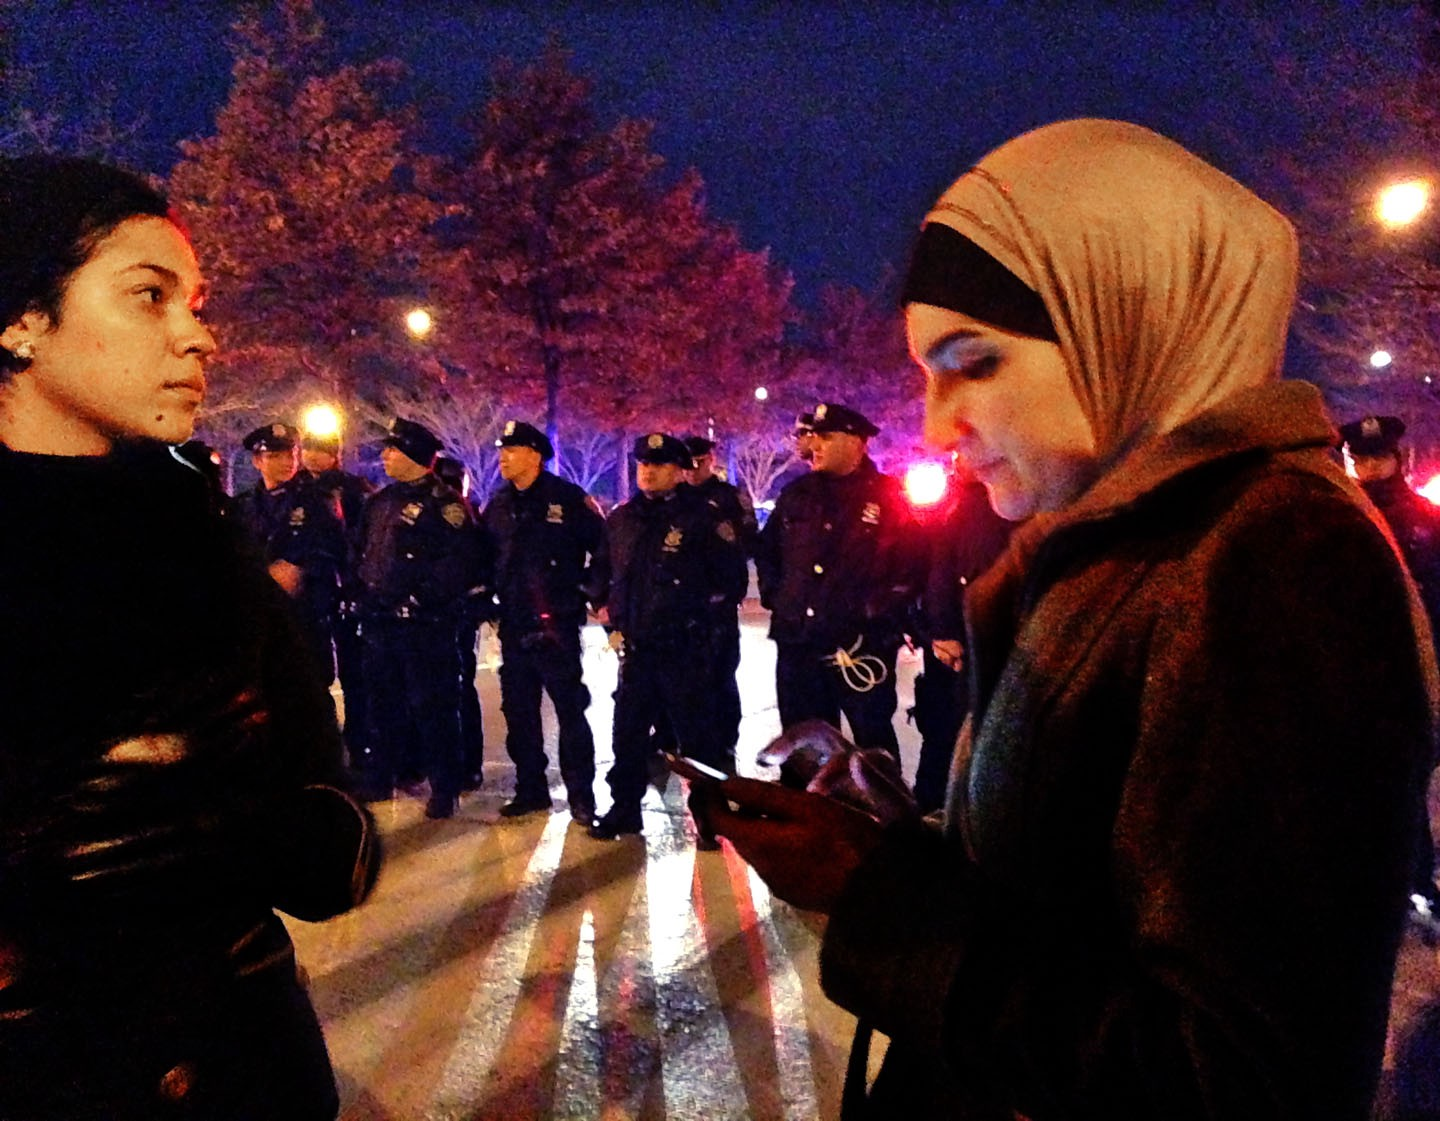 #EricGarner's Army of Prayer Warriors and Freedom Fighters #NYC